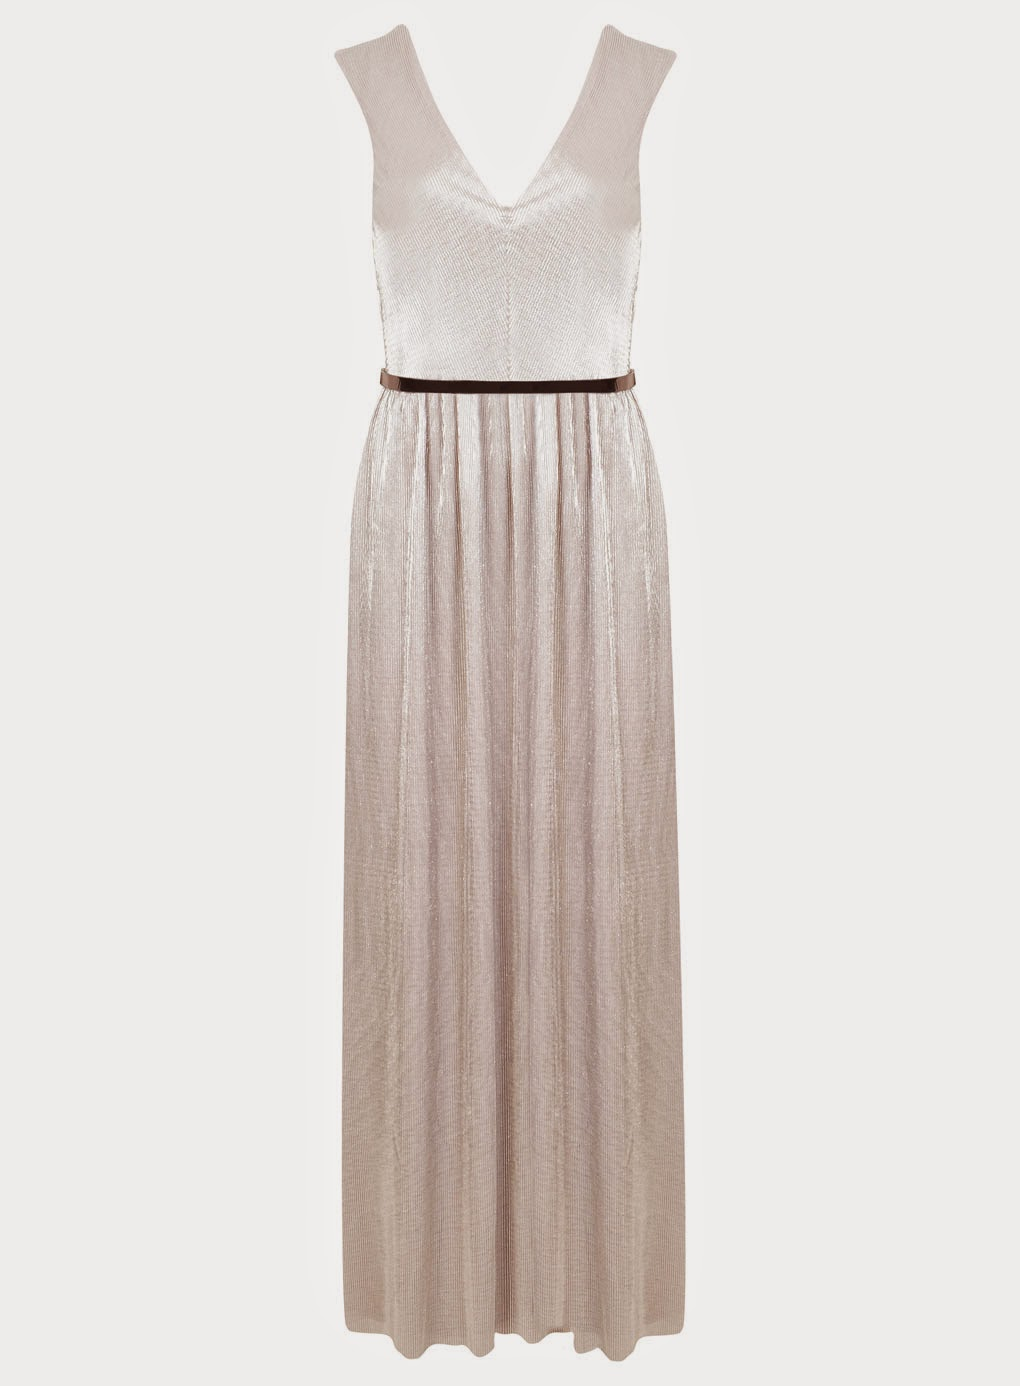 selfridge silver dress, silver maxi dress,